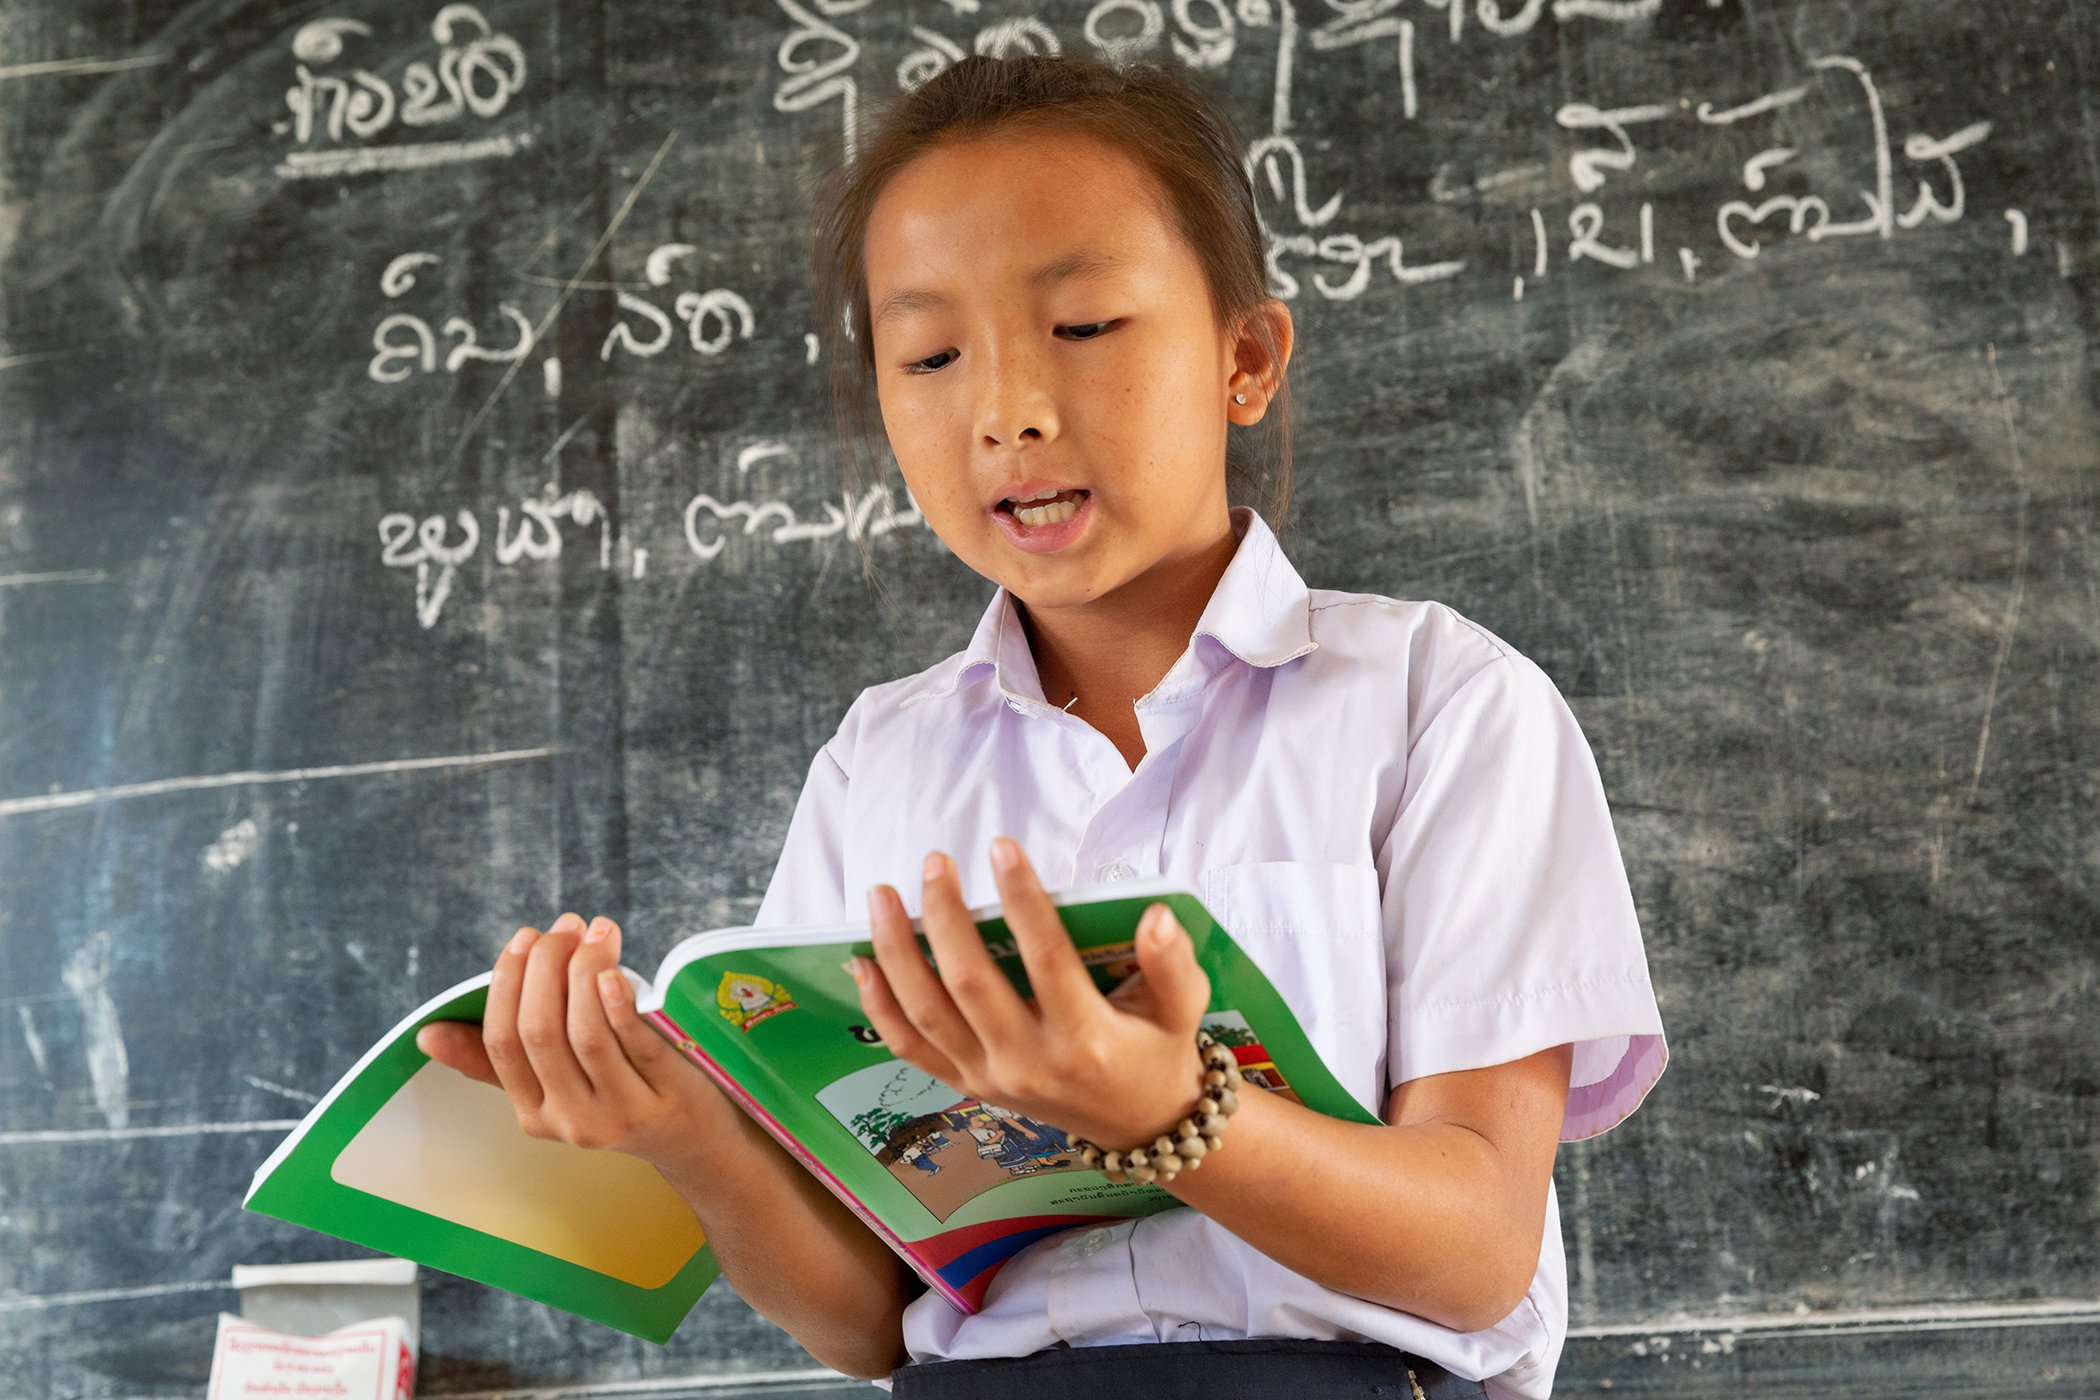 Girls-Education-Laos-001.jpg